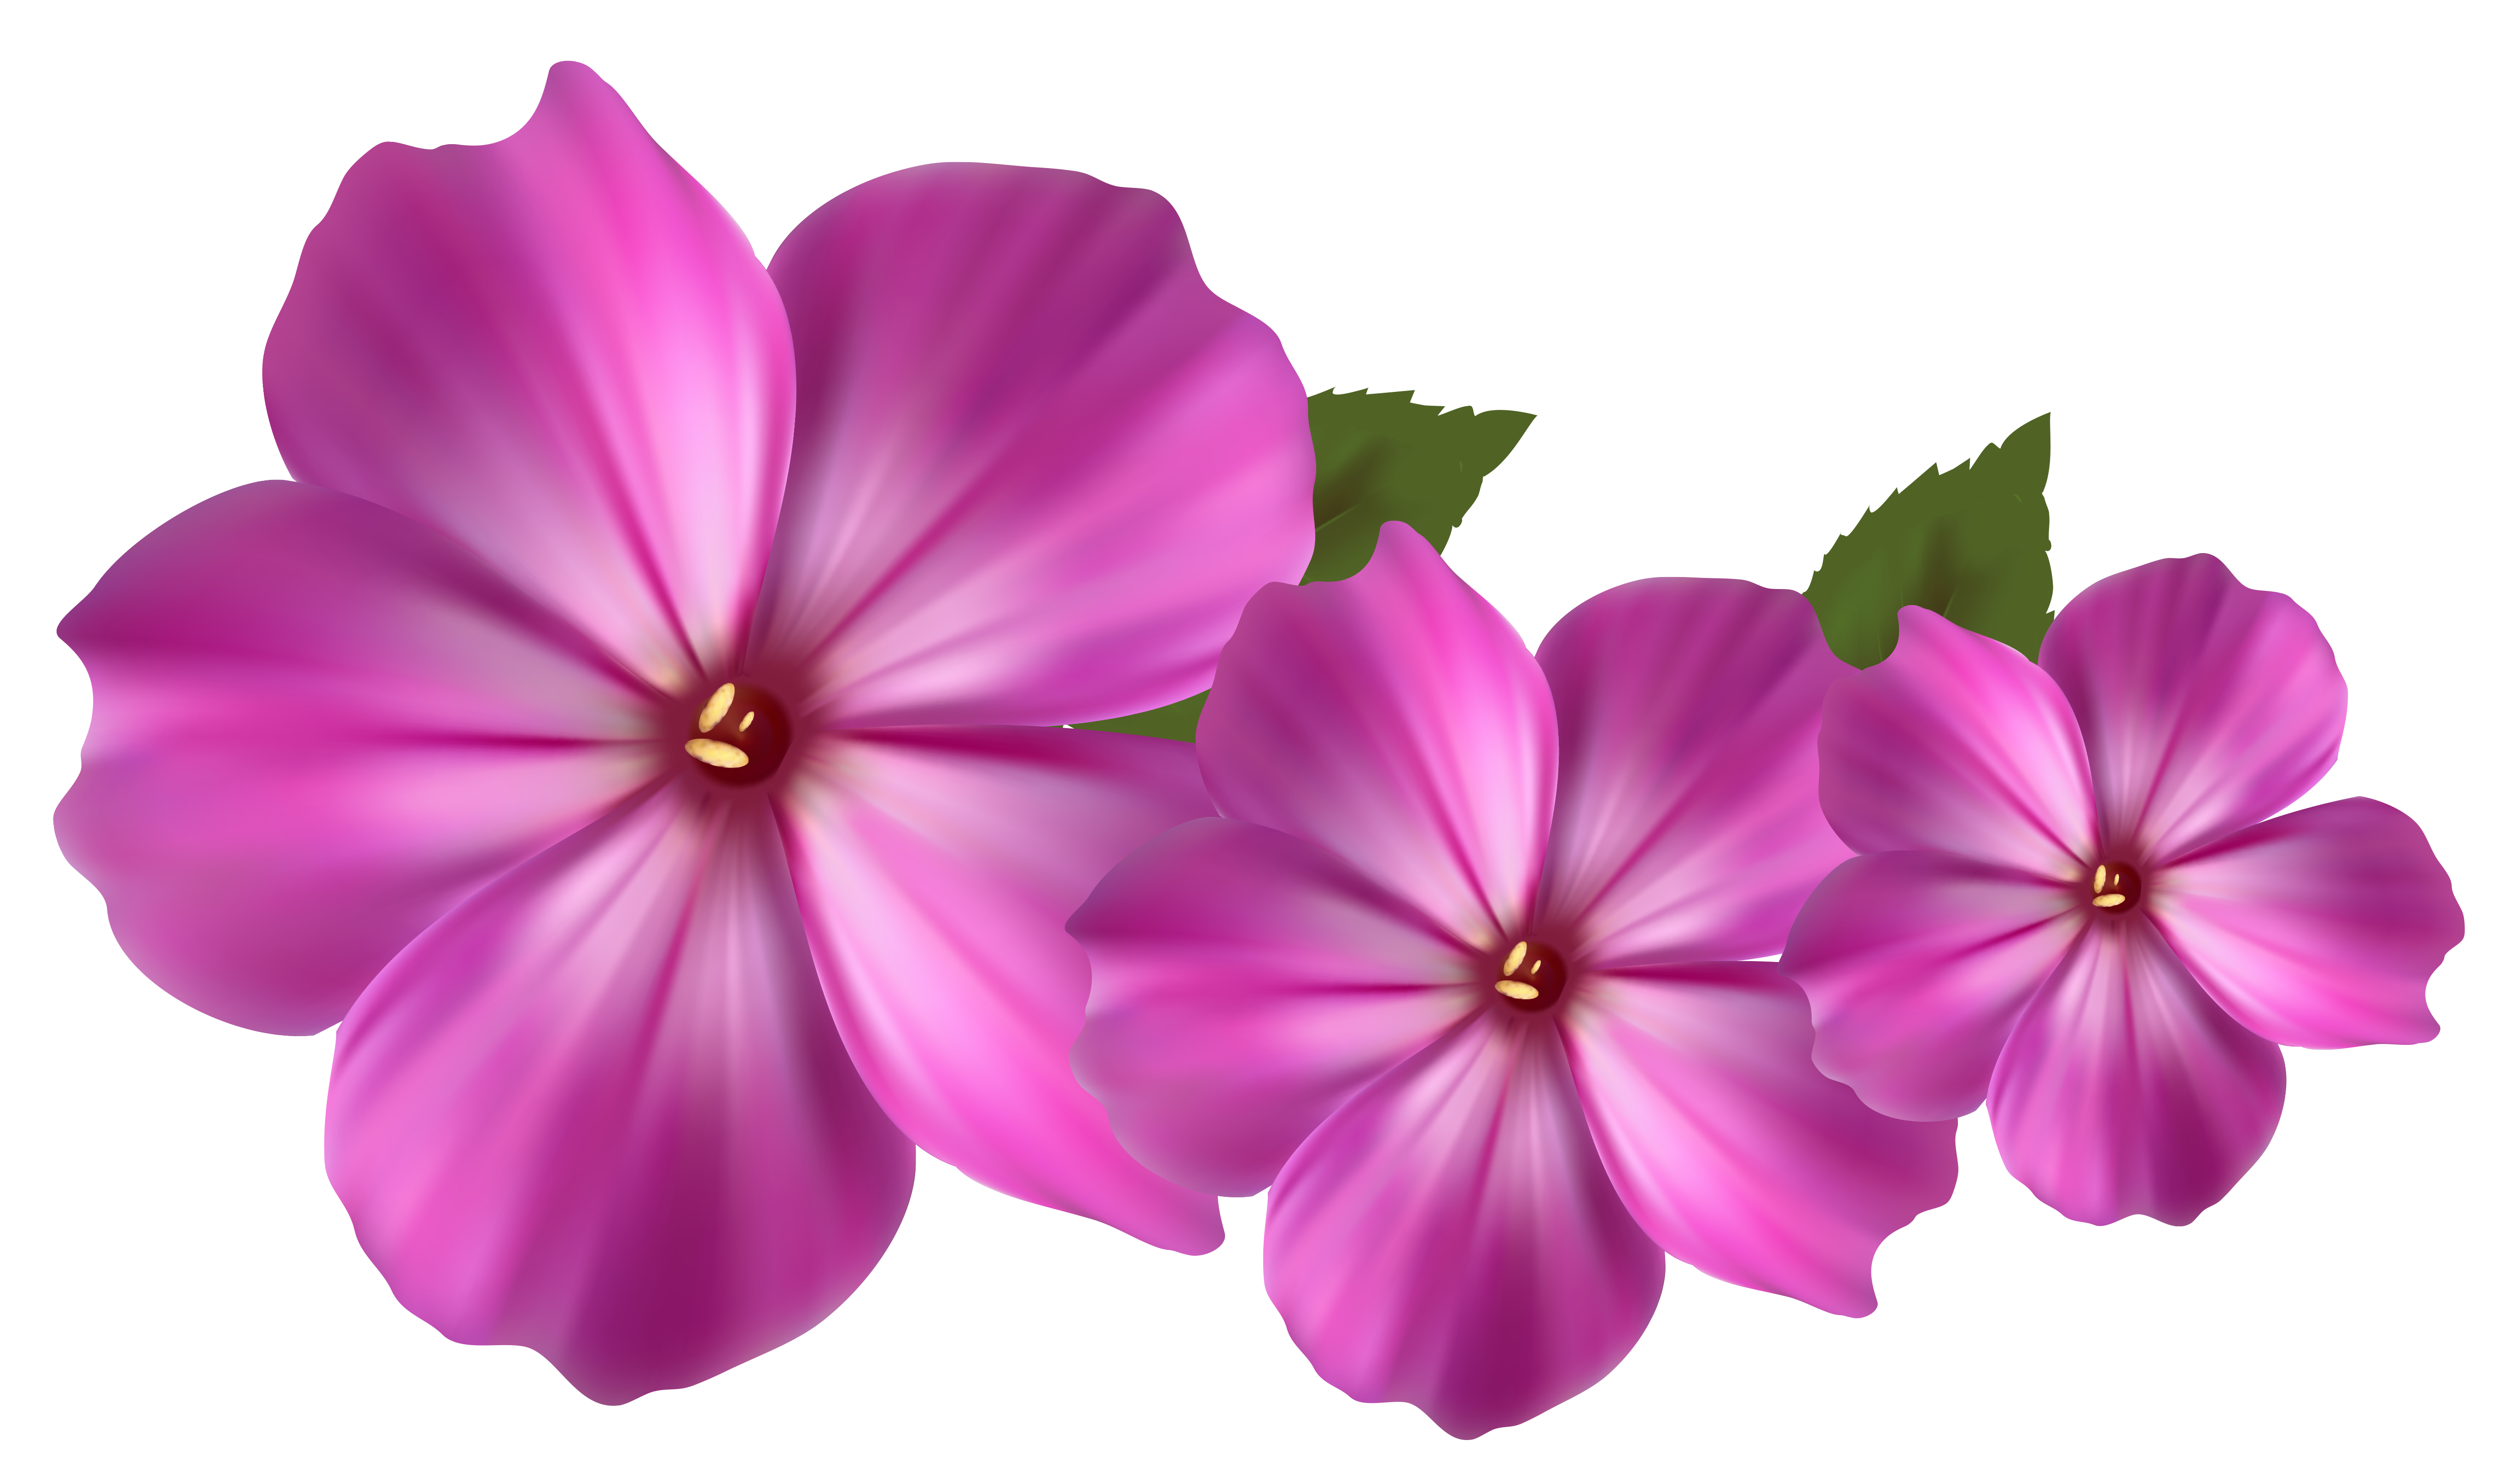 Flower png images. Pink decor clipart gallery